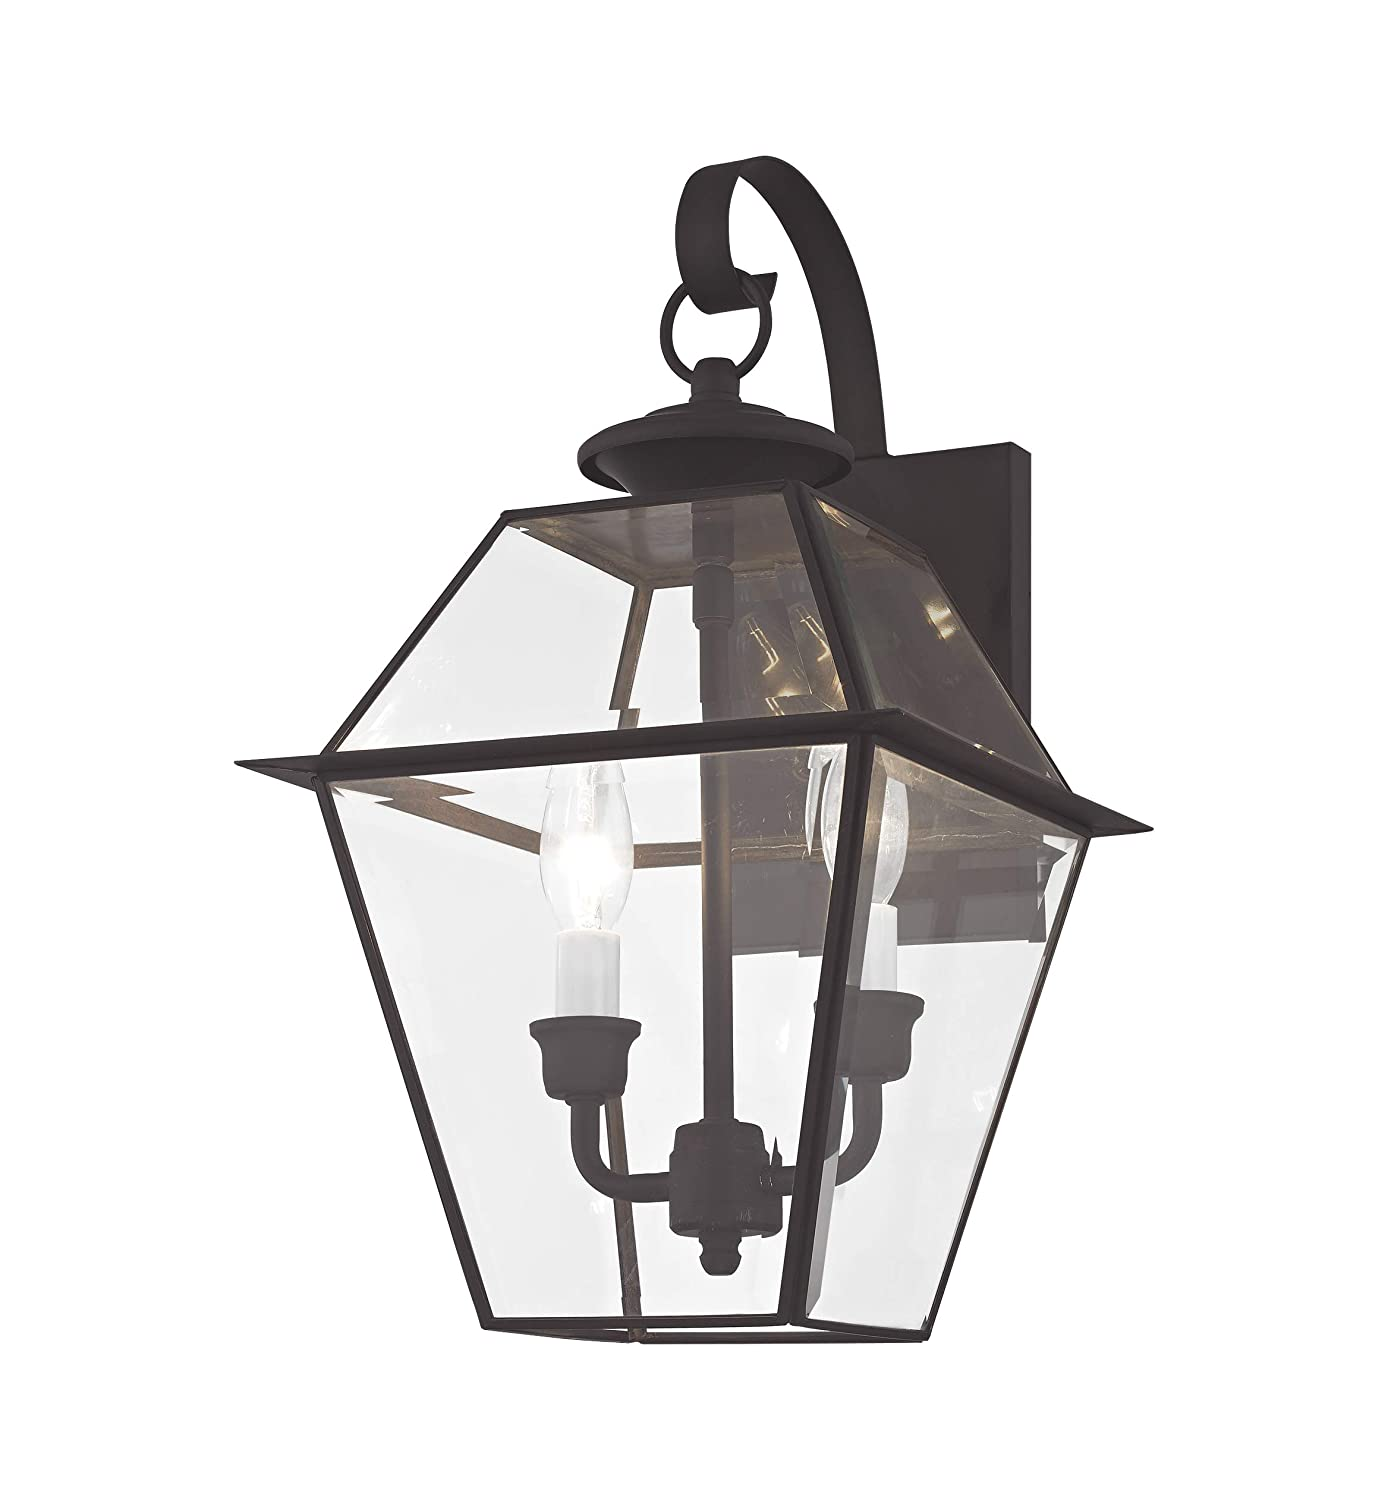 Livex Lighting 2281-04 Westover 2 Light Outdoor Black Finish Solid Brass Wall Lanternwith Clear Beveled Glass